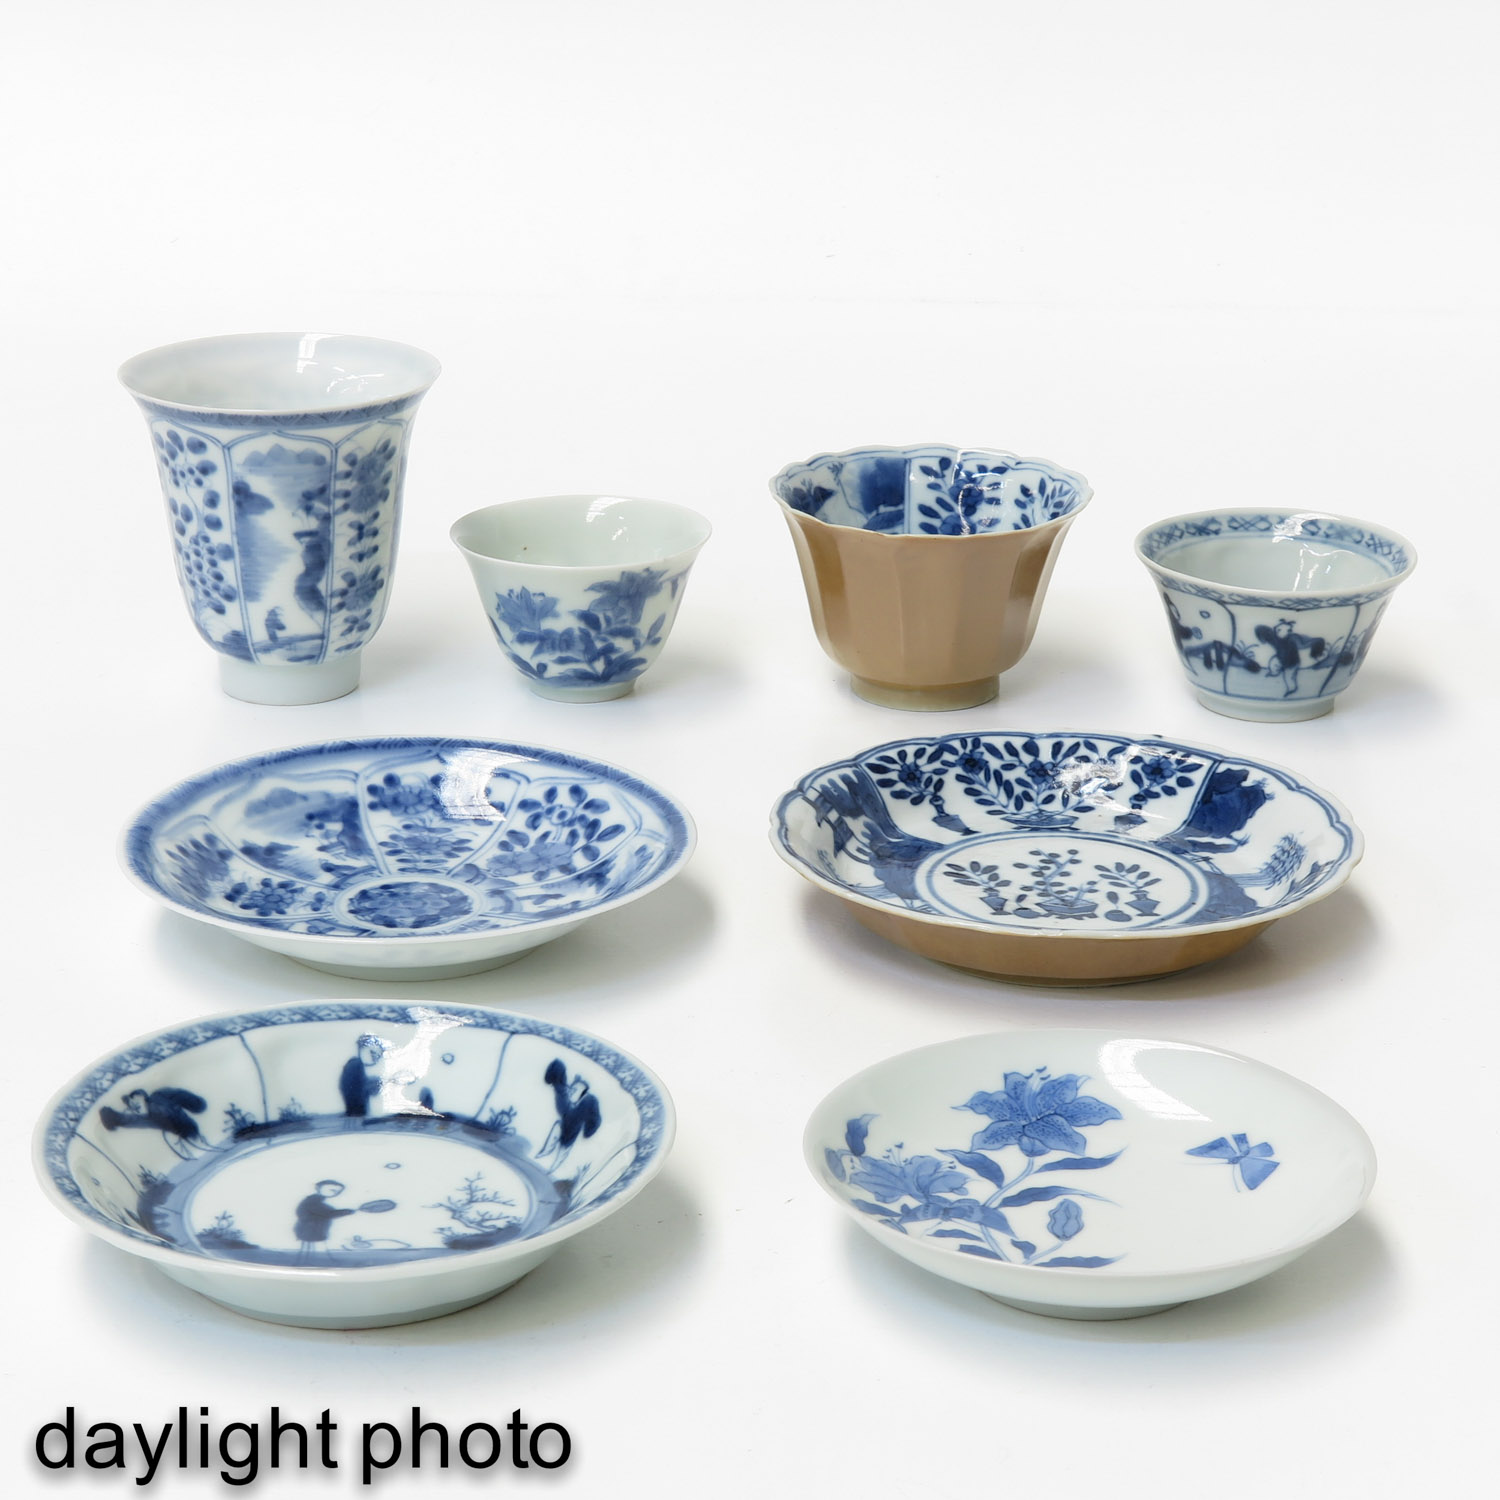 A Diverse Collection of Cups and Saucers - Image 9 of 10